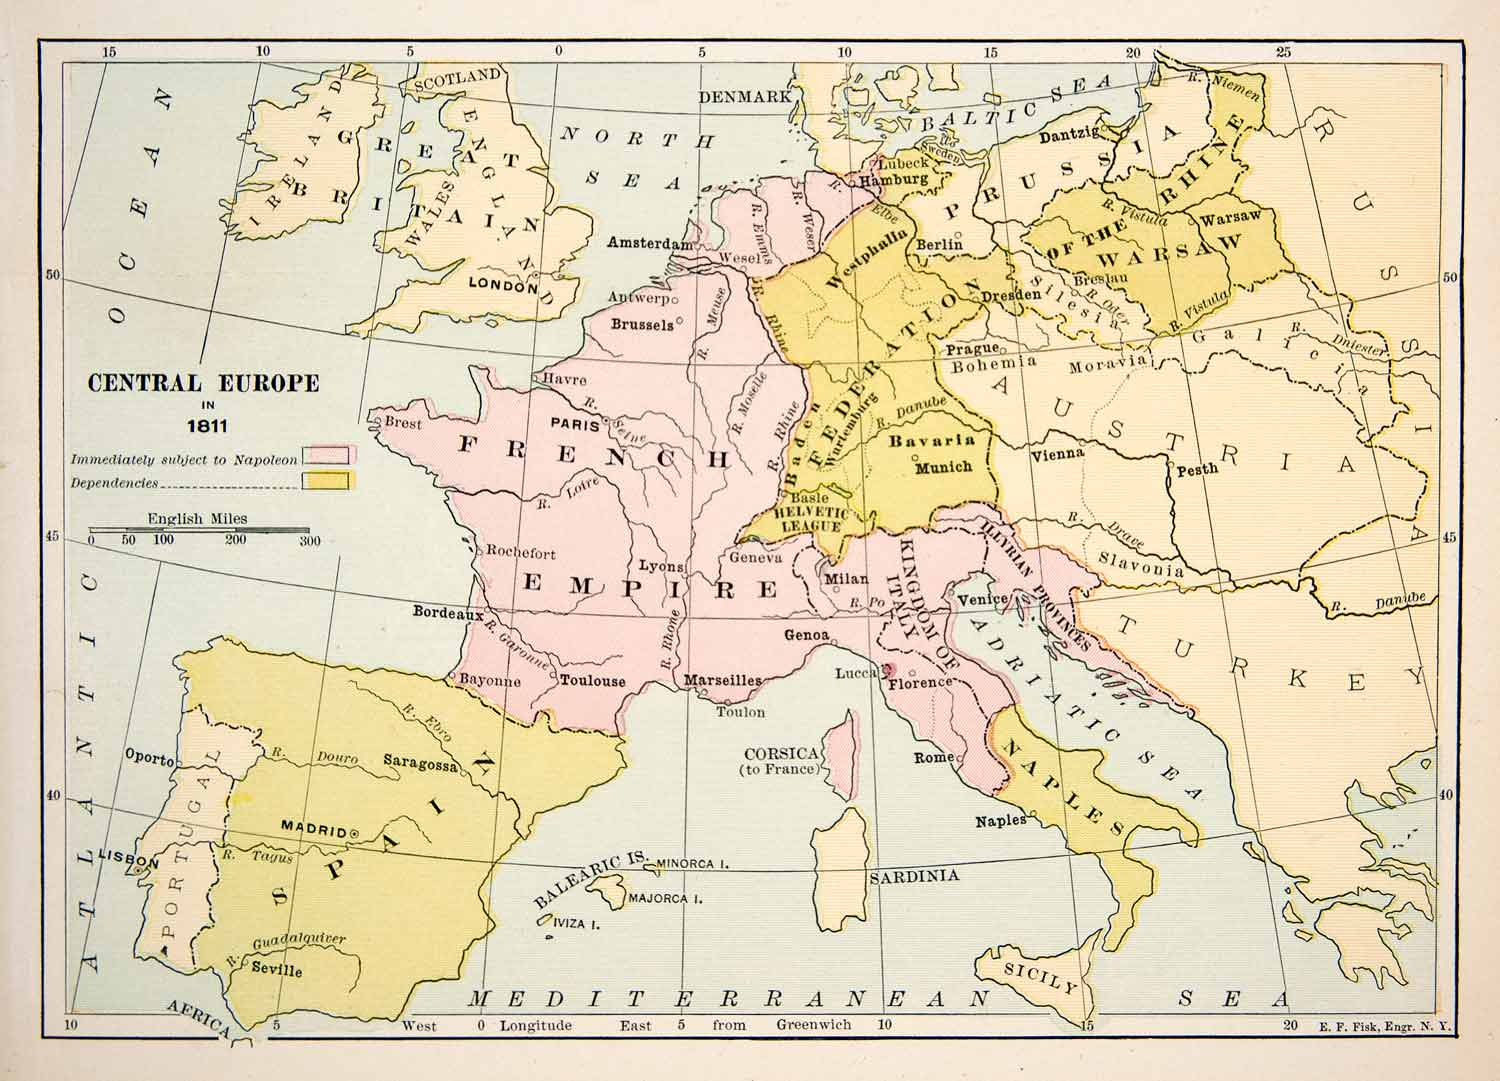 Map Of England Germany.1891 Print Antique 1811 Map Central Europe England Germany Italy France Xer5